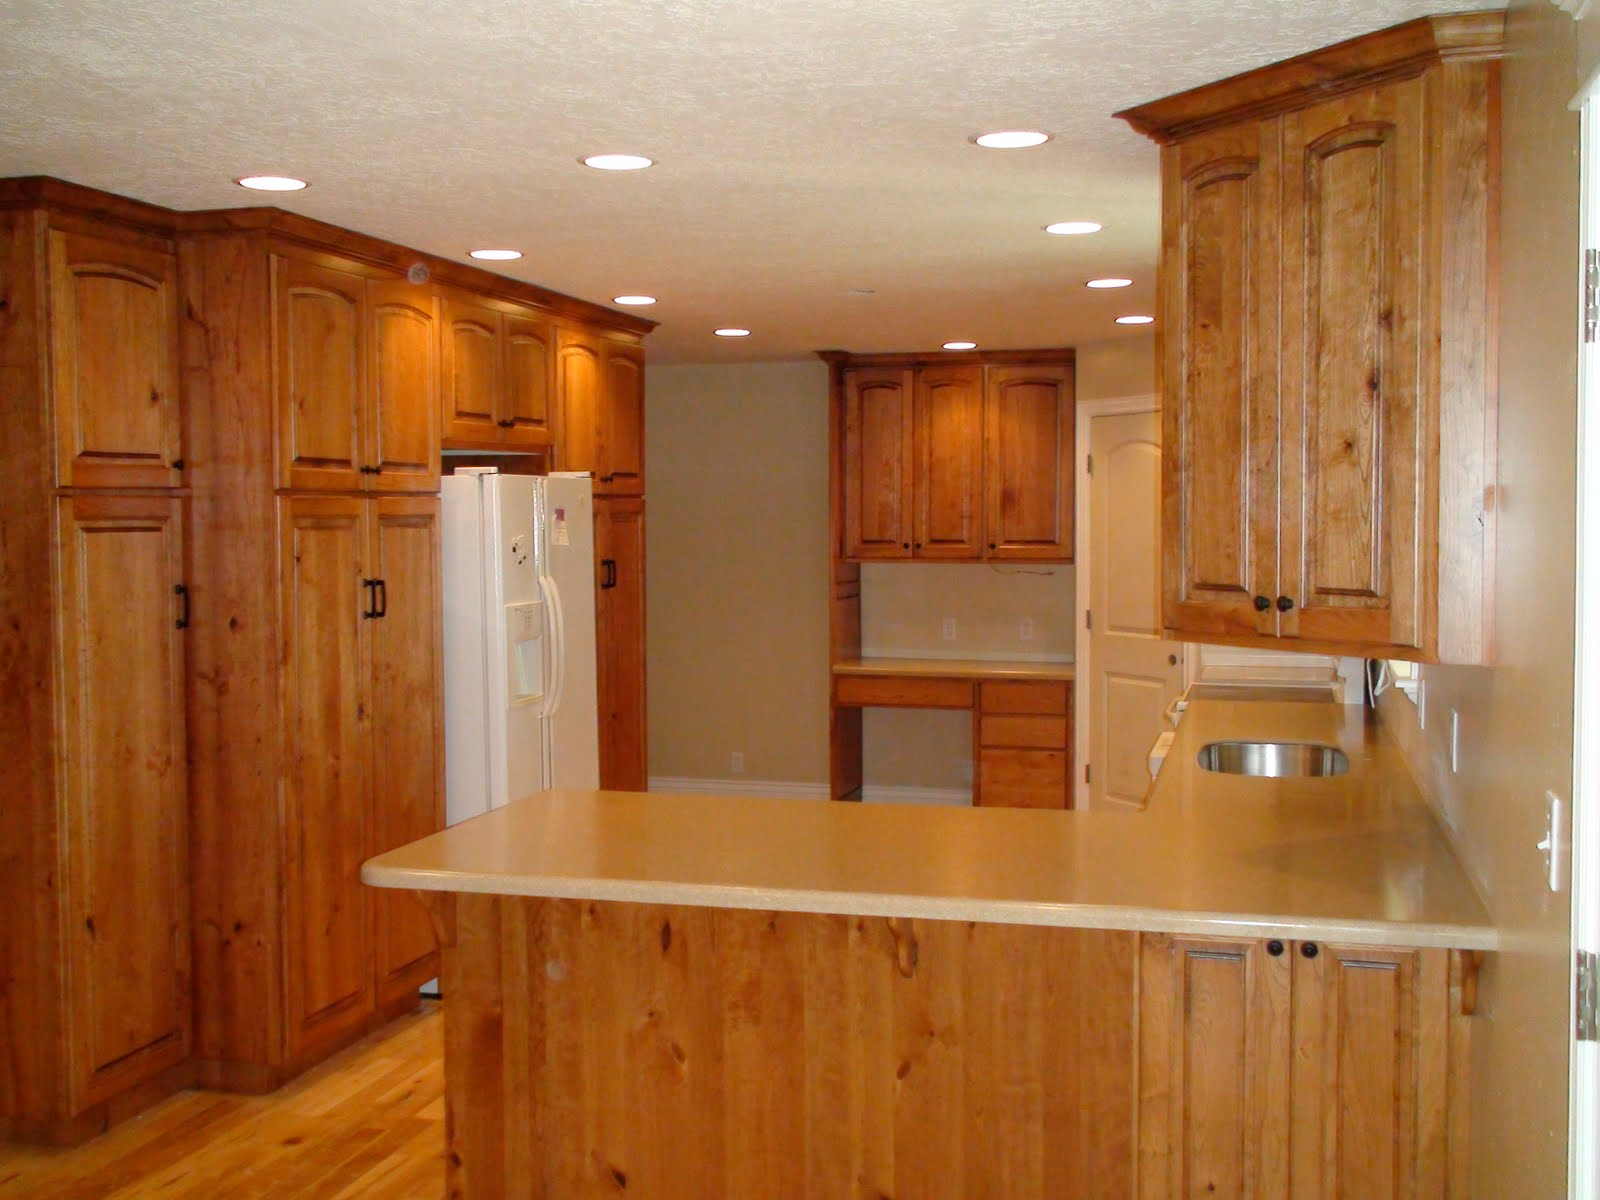 Degroff Custom Woodworking November 2009